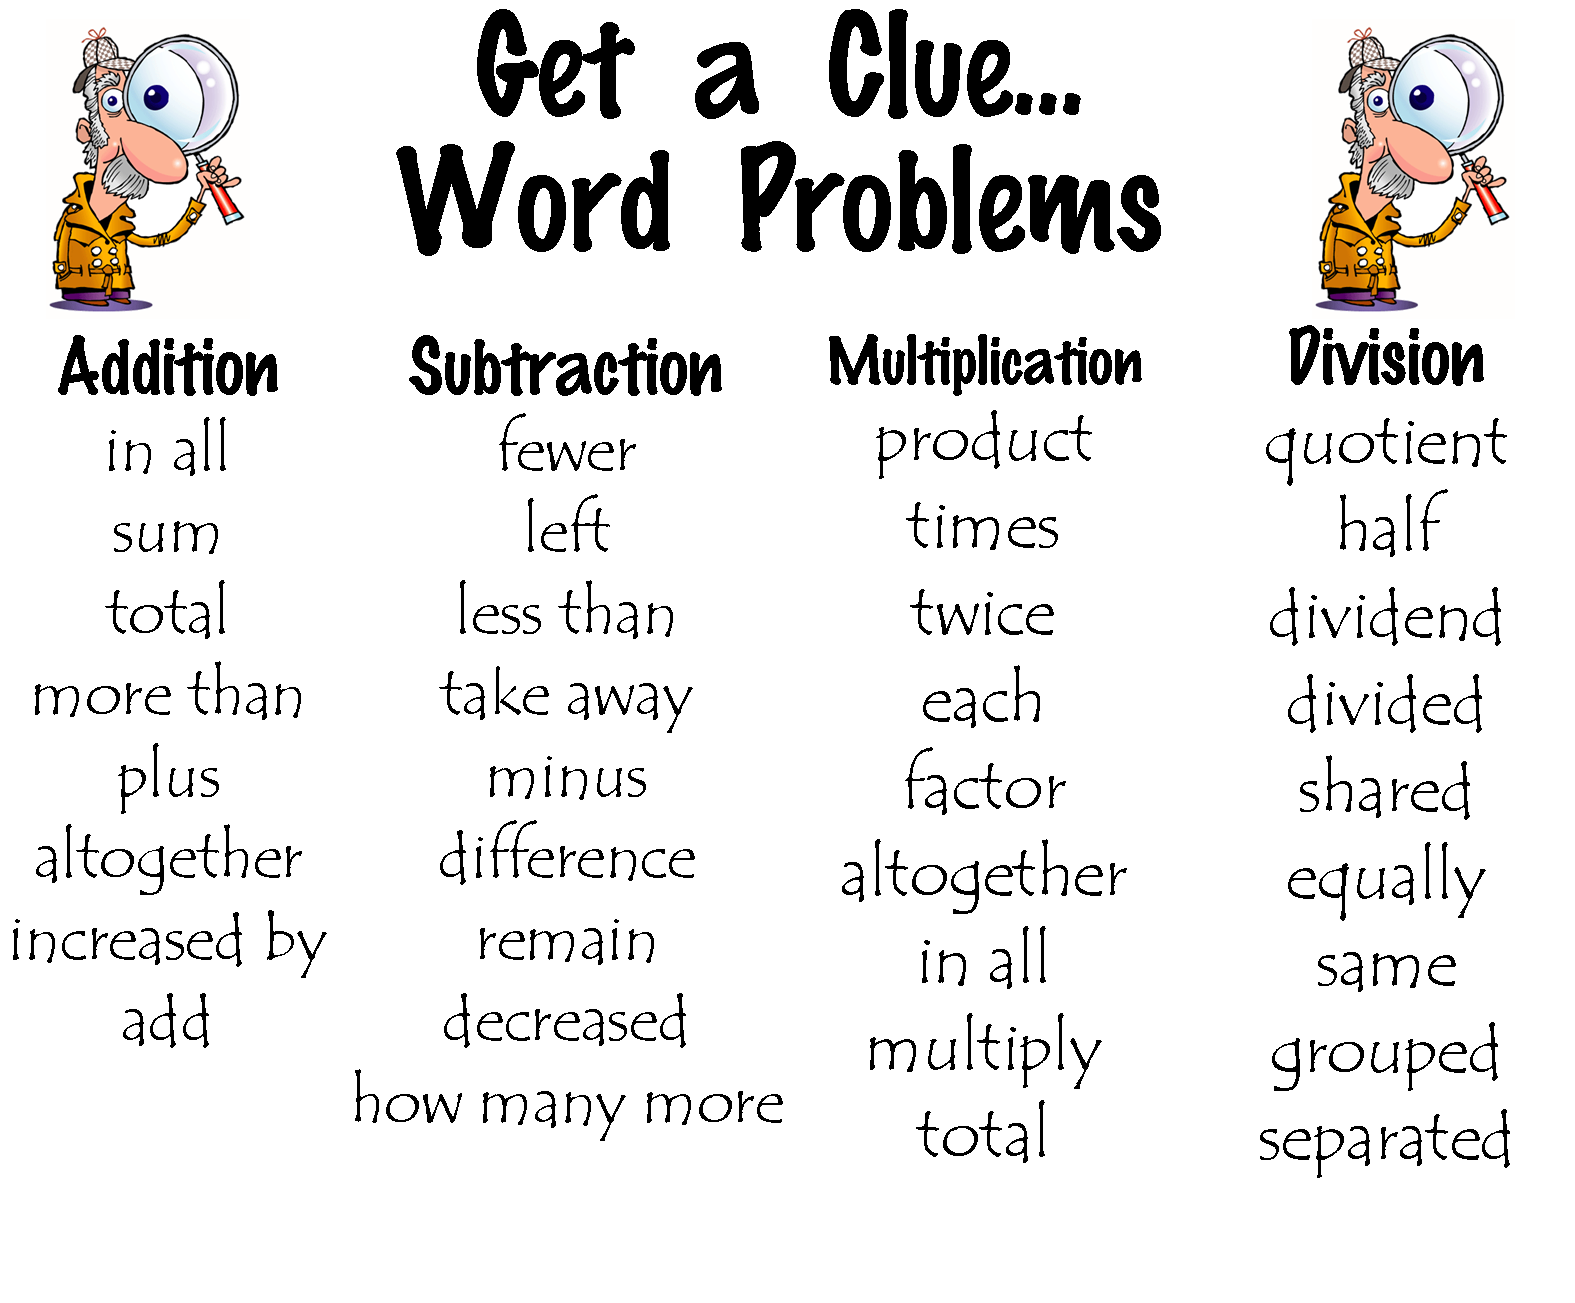 svg freeuse stock Two step word problems. Problem clipart story problem